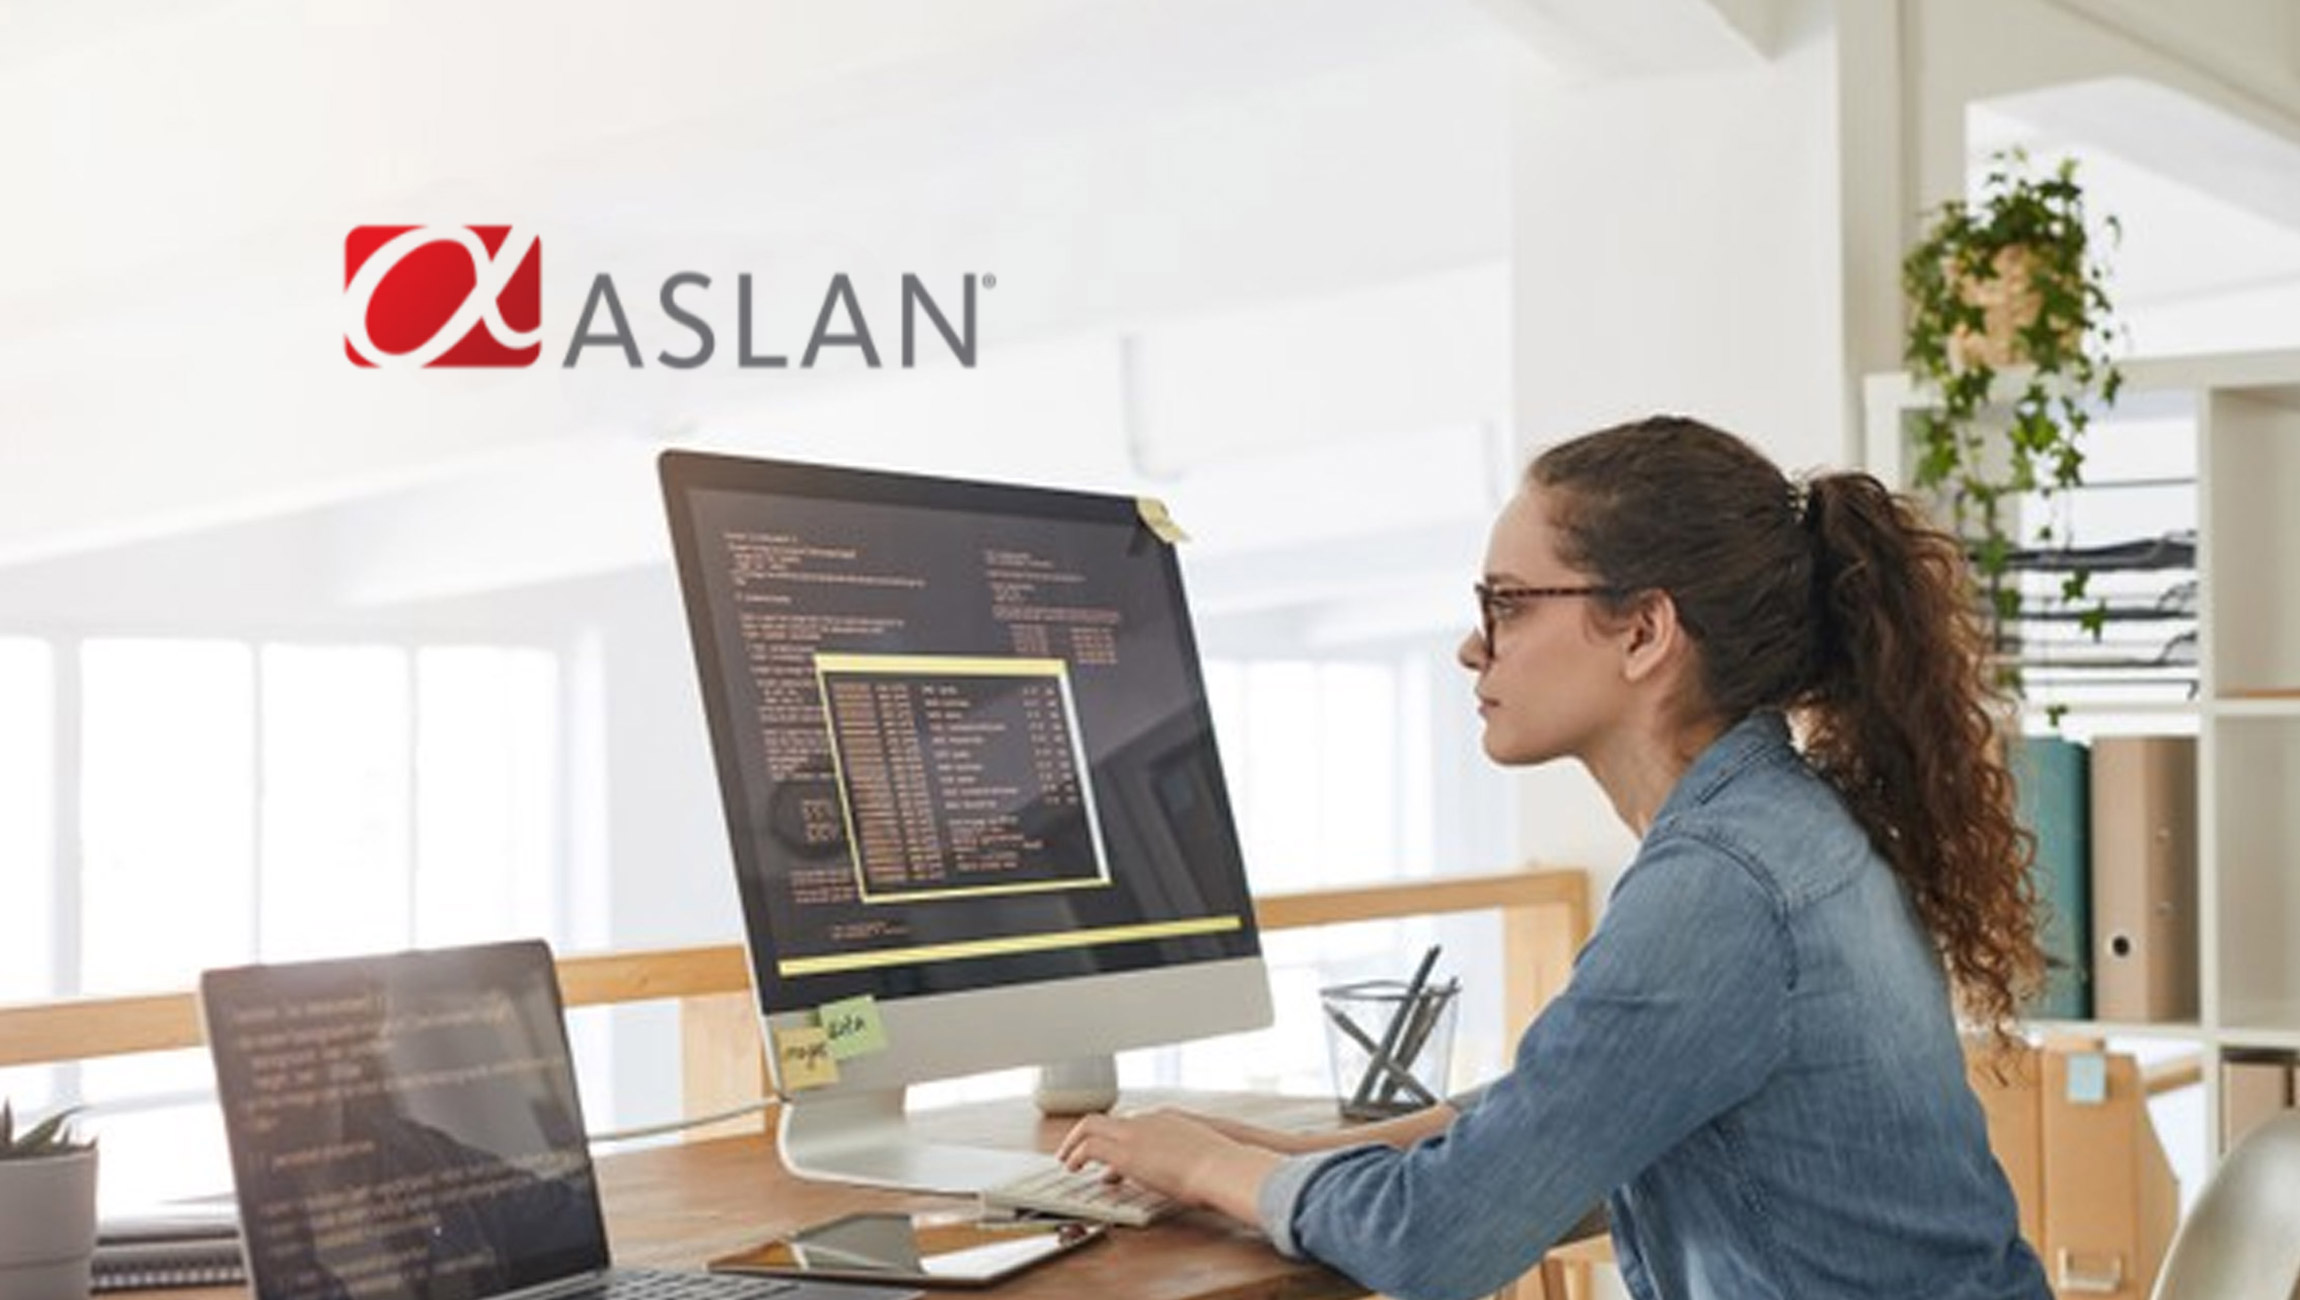 ASLAN-Announces-New-Product-Offer_-QuadCoaching™-to-Assist-Sales-Managers-Who-Struggle-with-Finding-Time-to-Coach